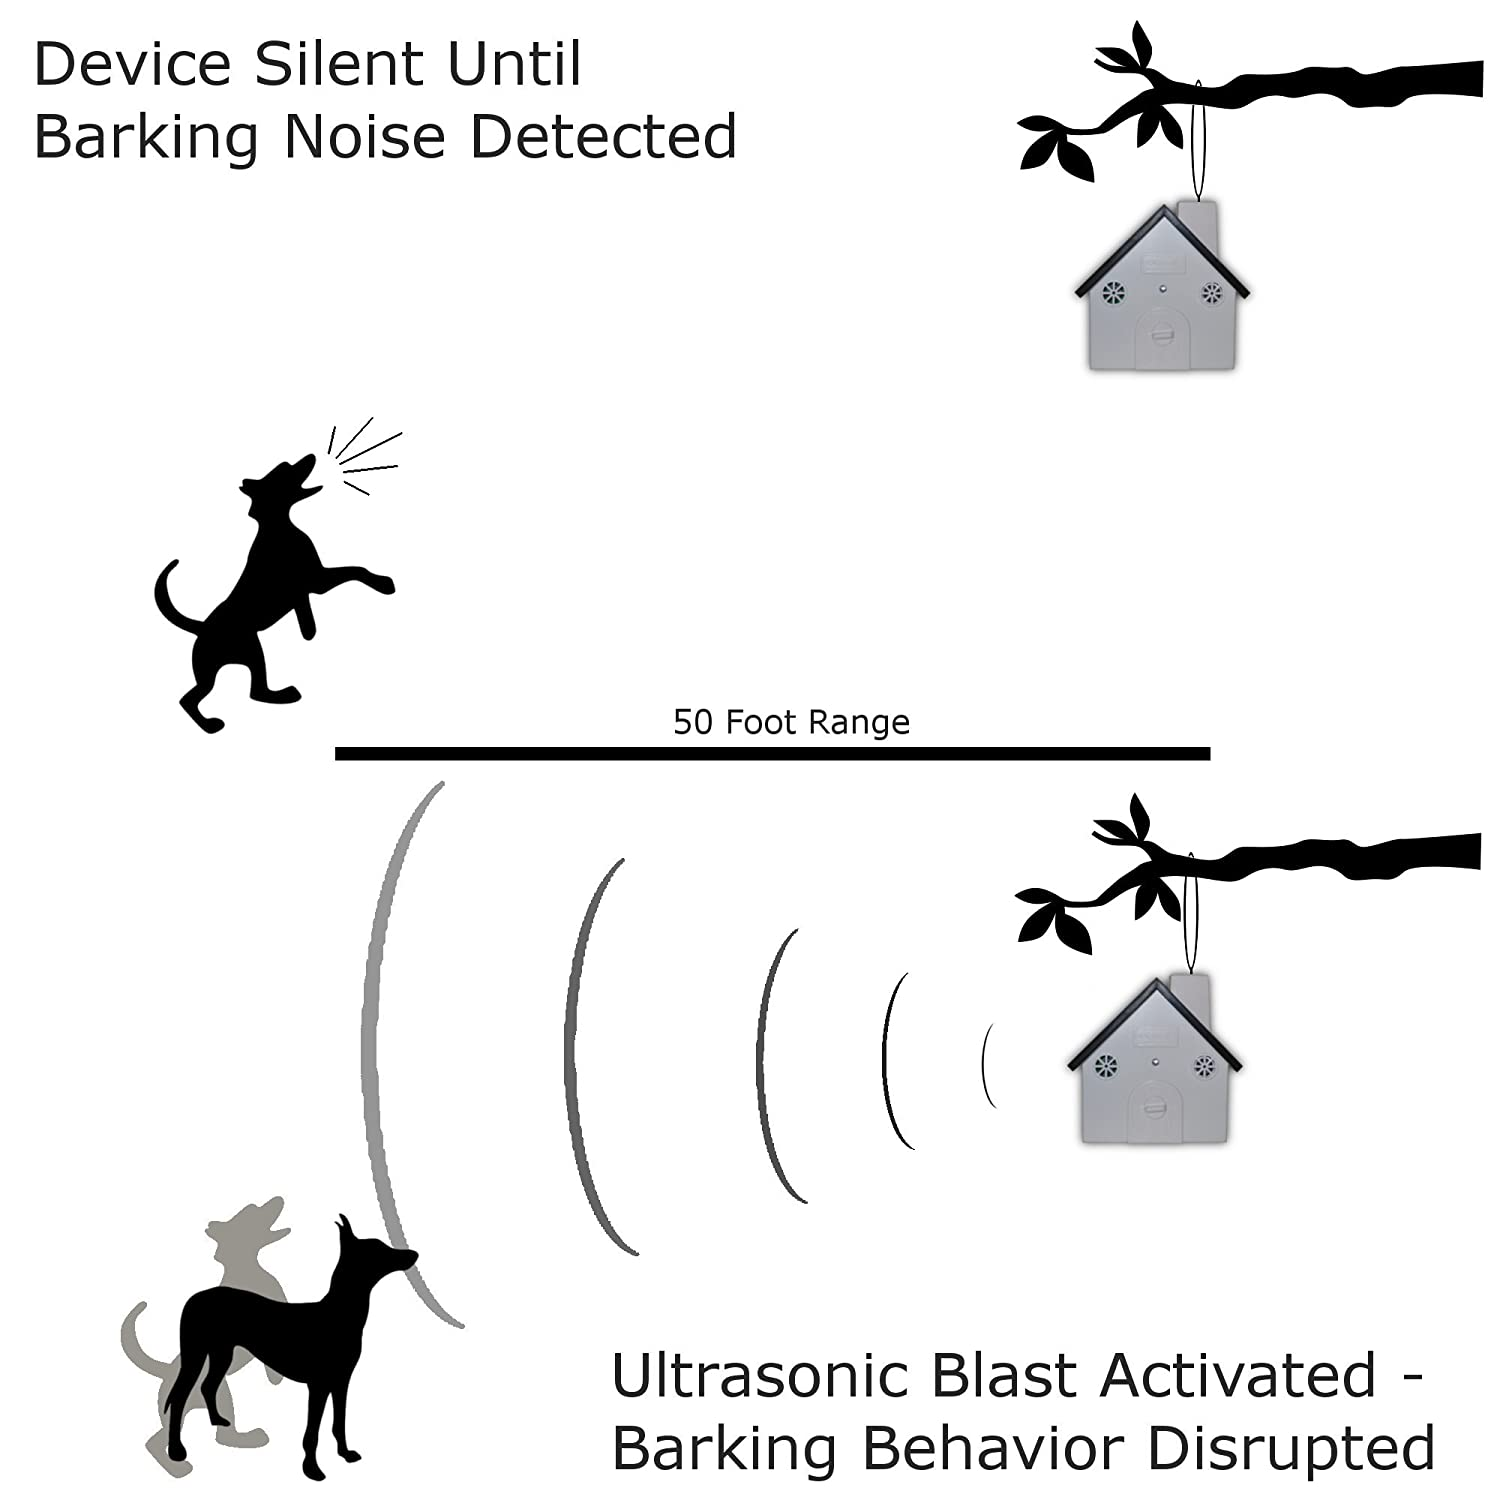 Outdoor Ultrasonic Bark Control Anti Device Dog Whistle Circuit Barking Deterrent Stop Dogs Proven Results Sonic Technology 50 Foot Range Automatic